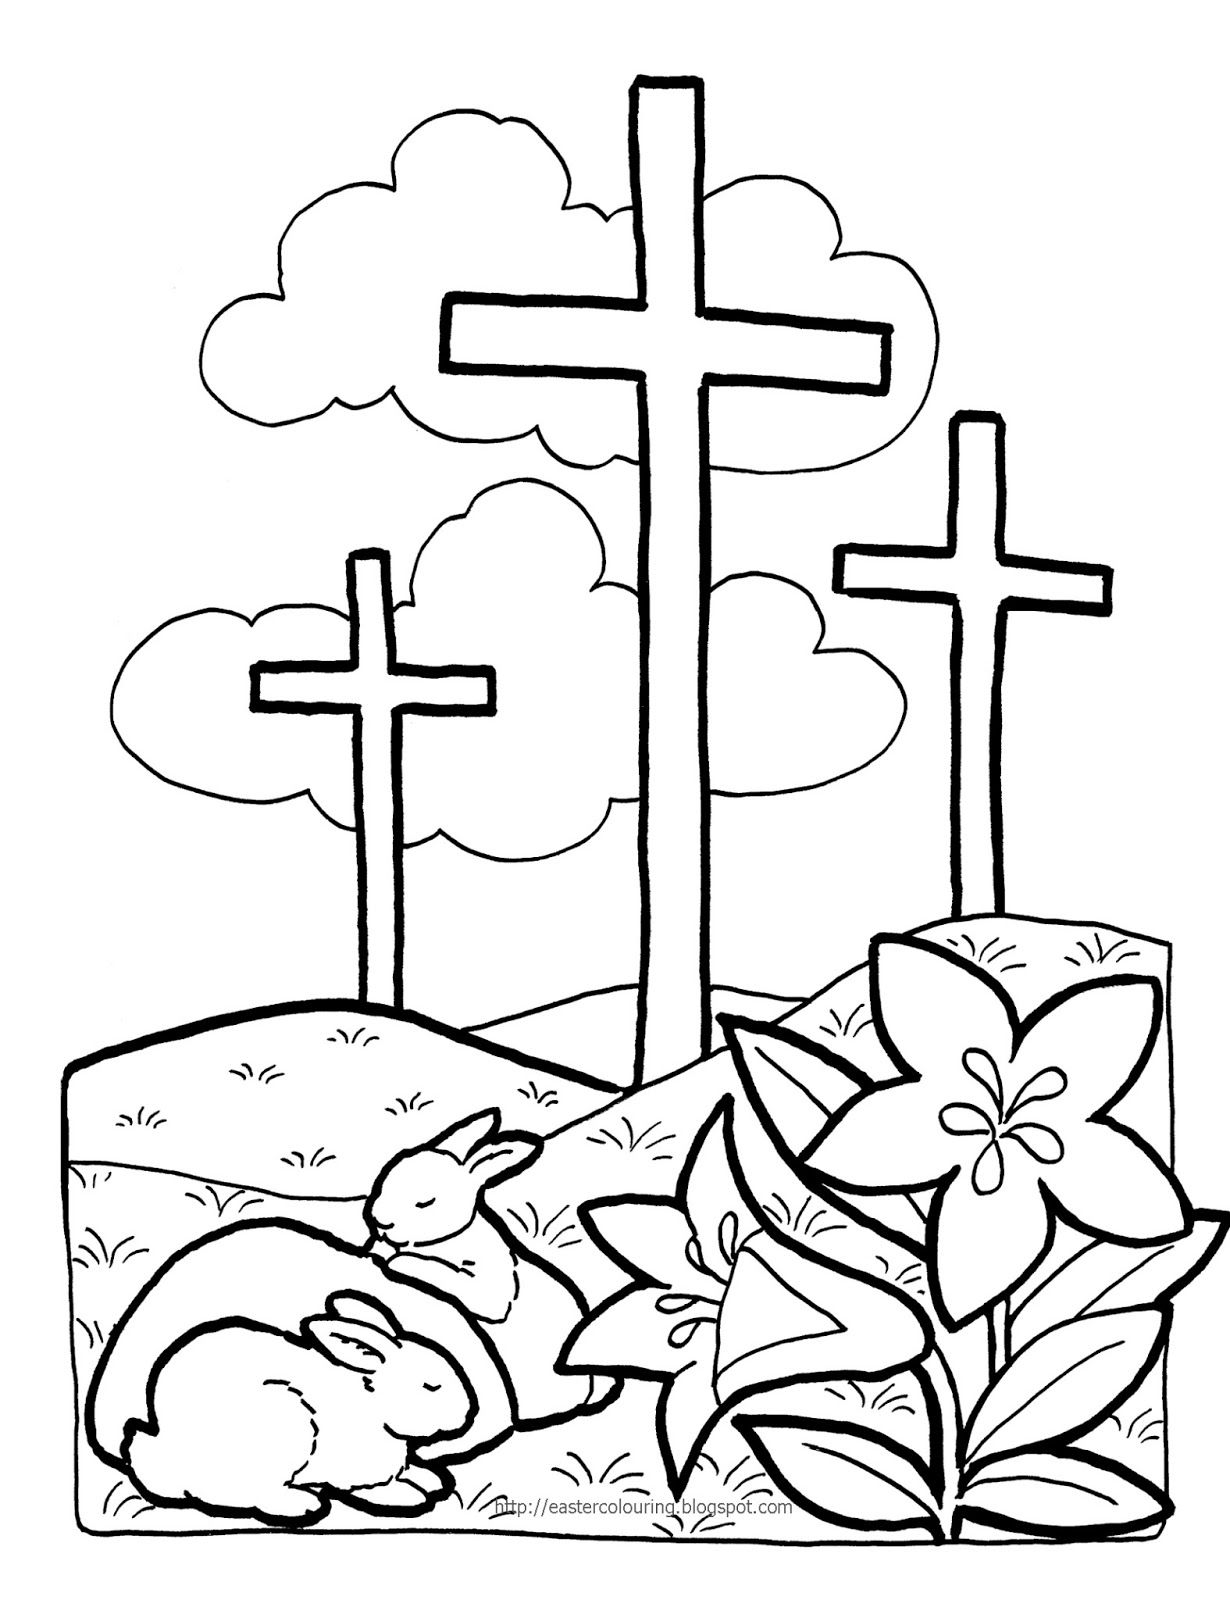 12 Holy Week & Easter Coloring pages ideas  coloring pages